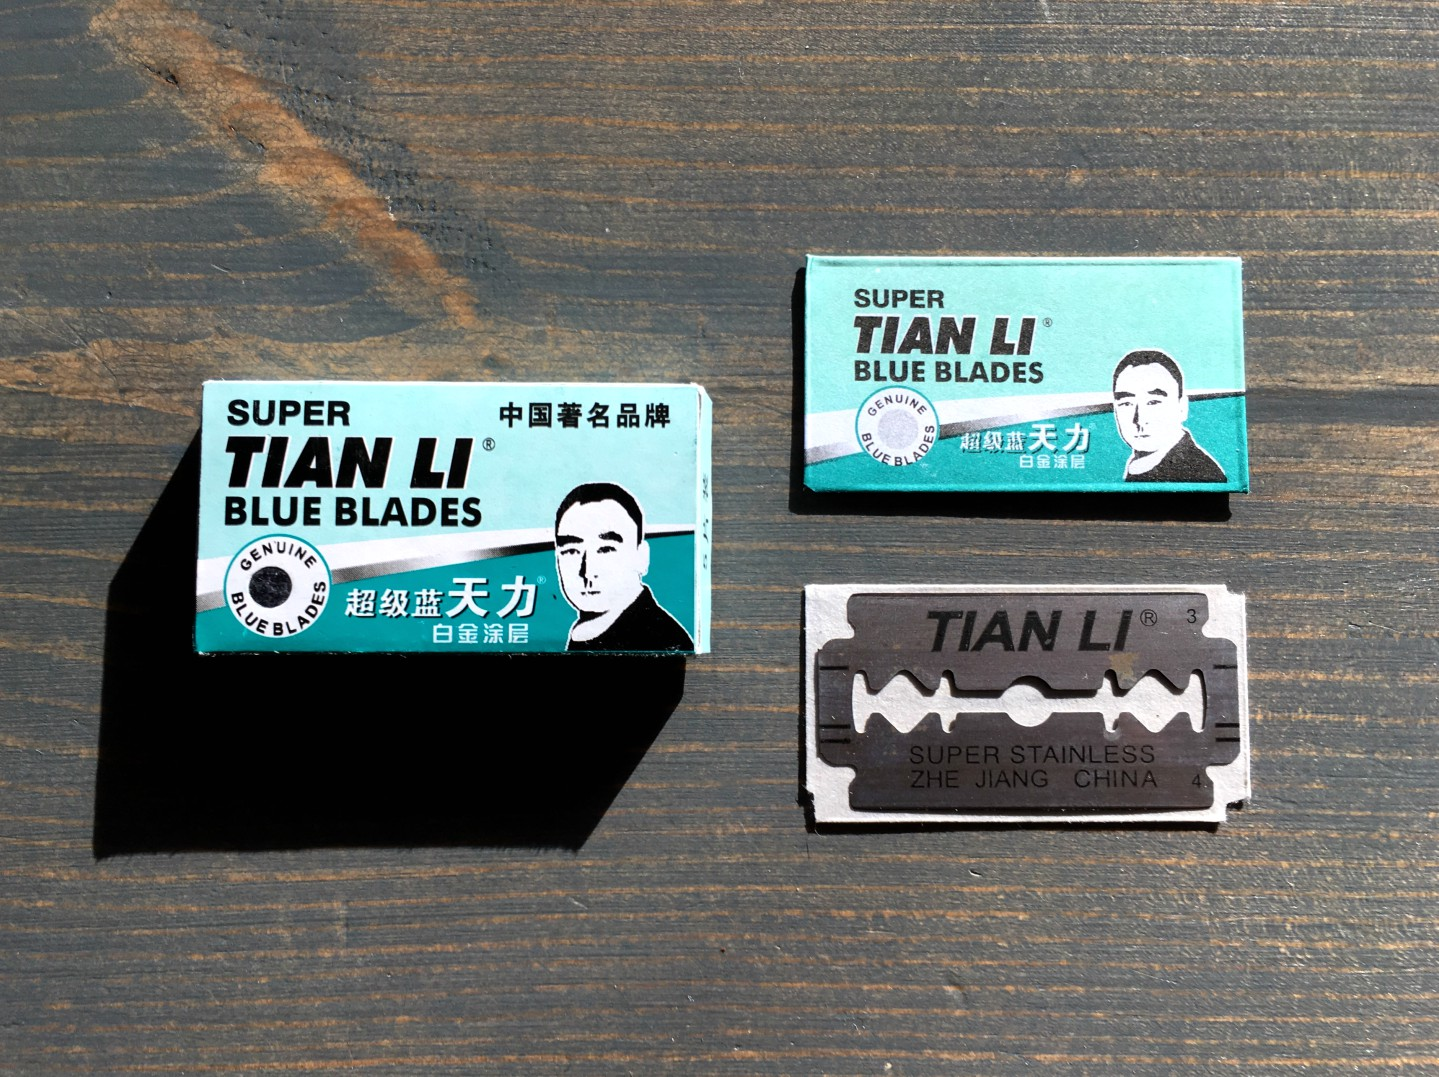 Super Tian Li Blue Blades Razor Blade Review